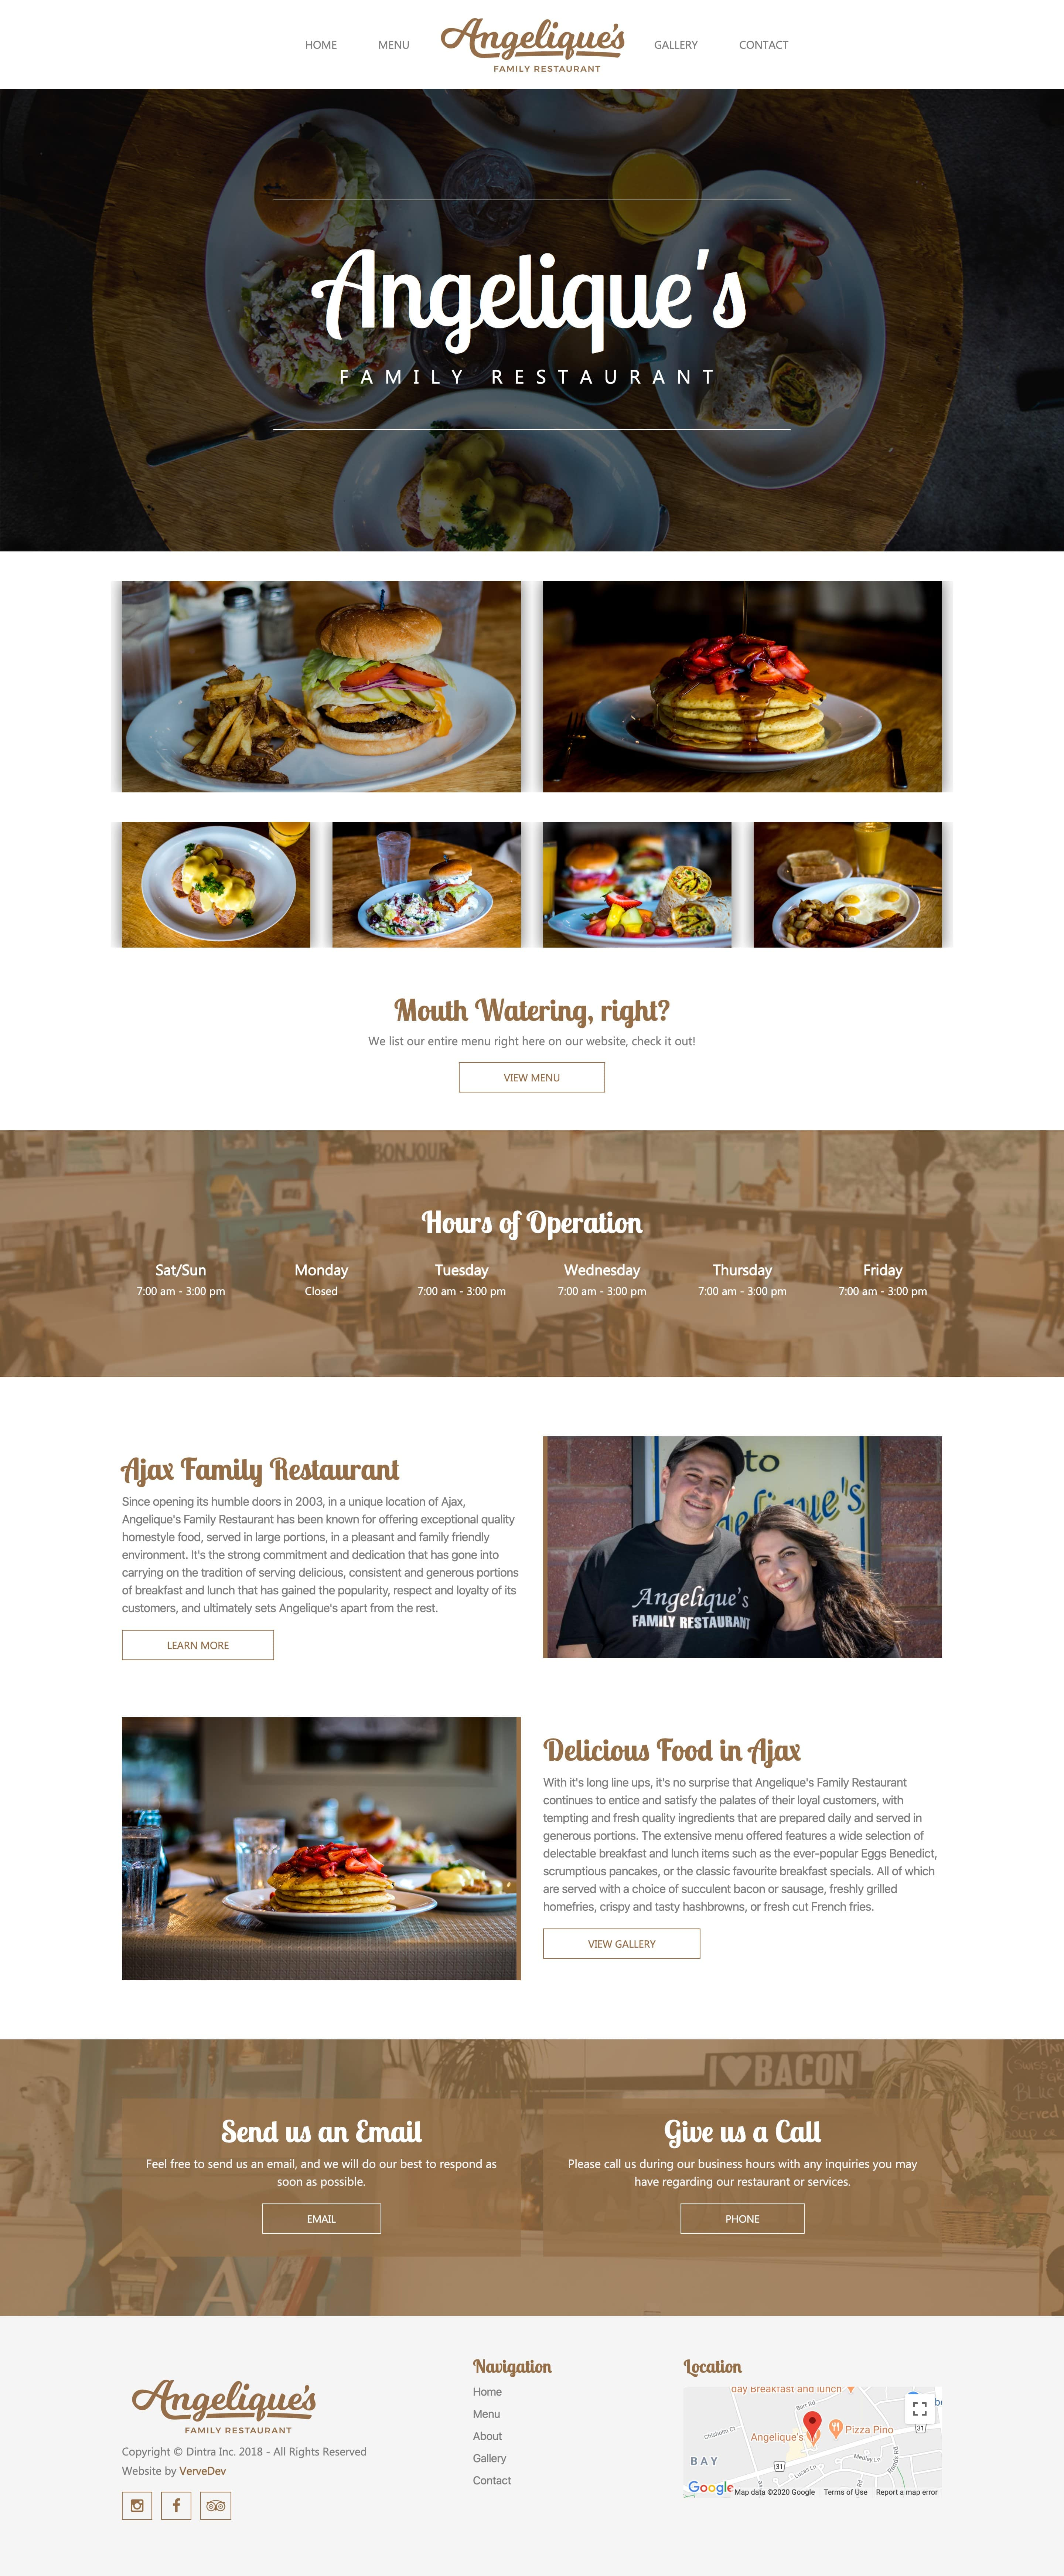 vaughan-website-design-portfolio-4